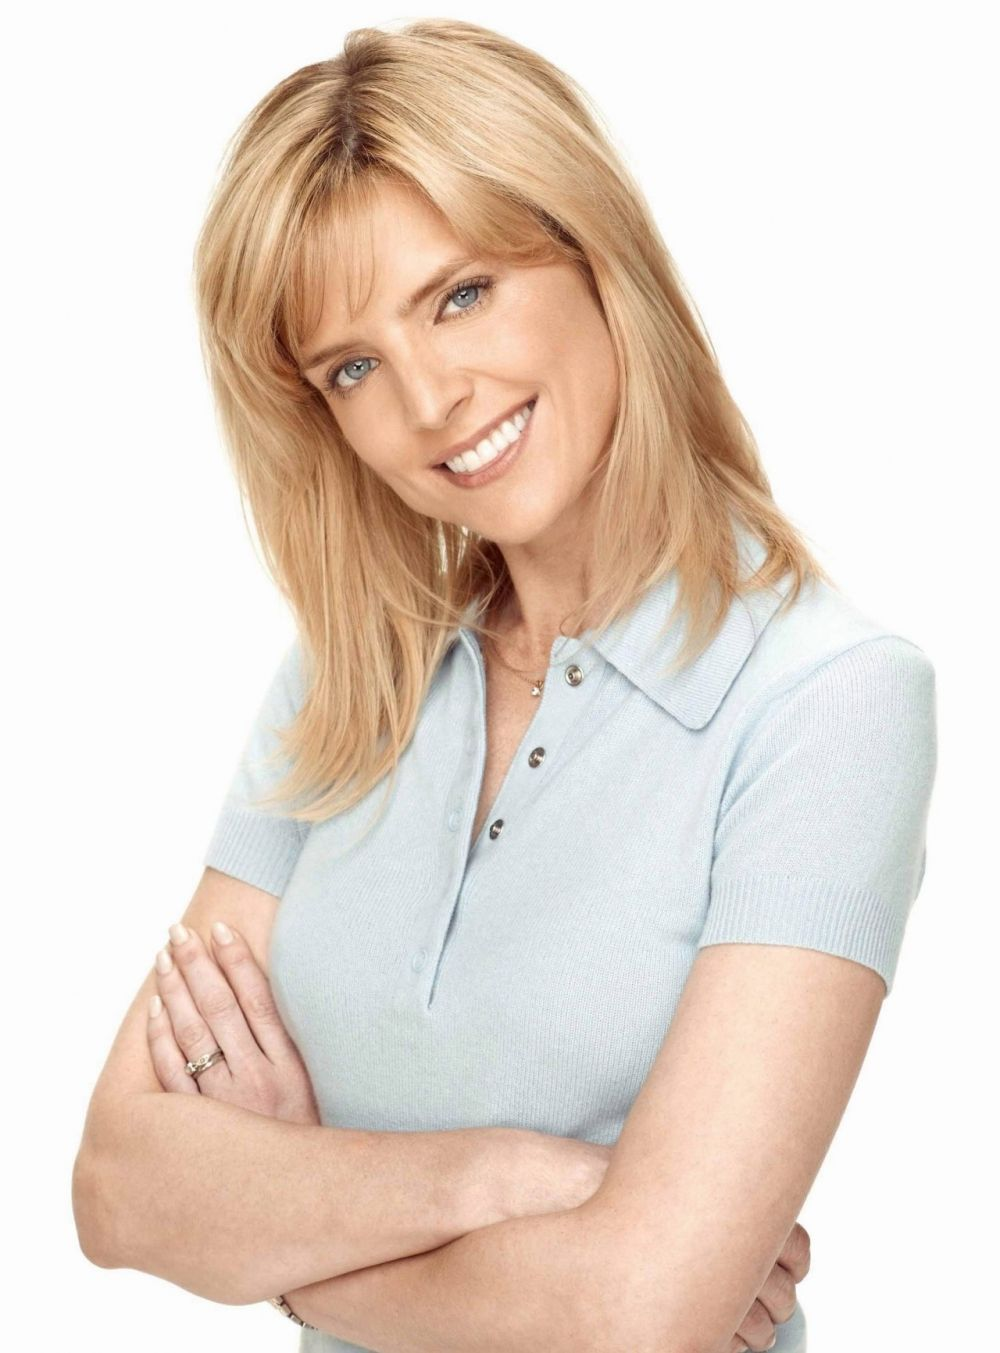 Courtney thorne picture 18